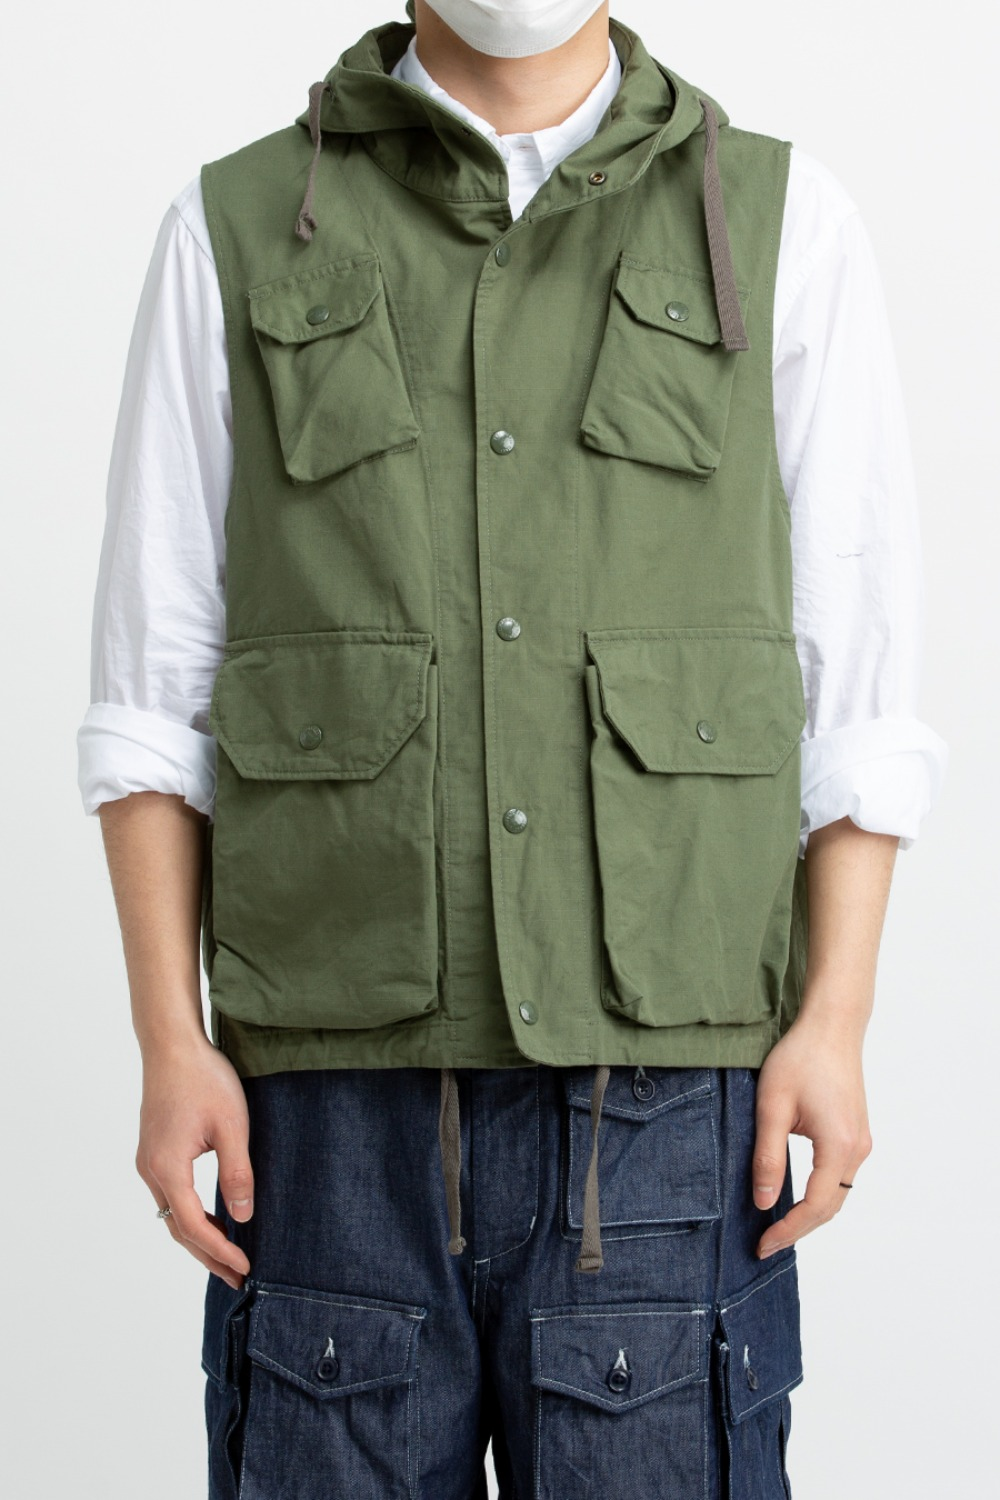 FIELD VEST OLIVE COTTON RIPSTOP